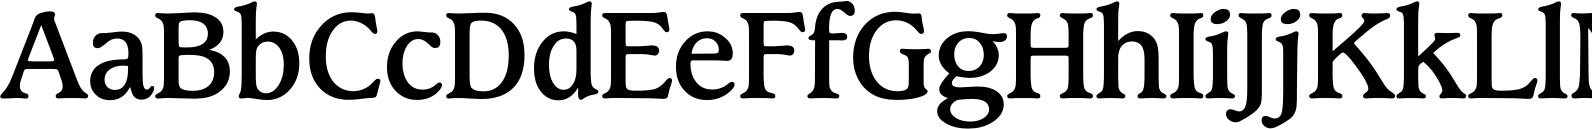 KingsrowRR Medium Font